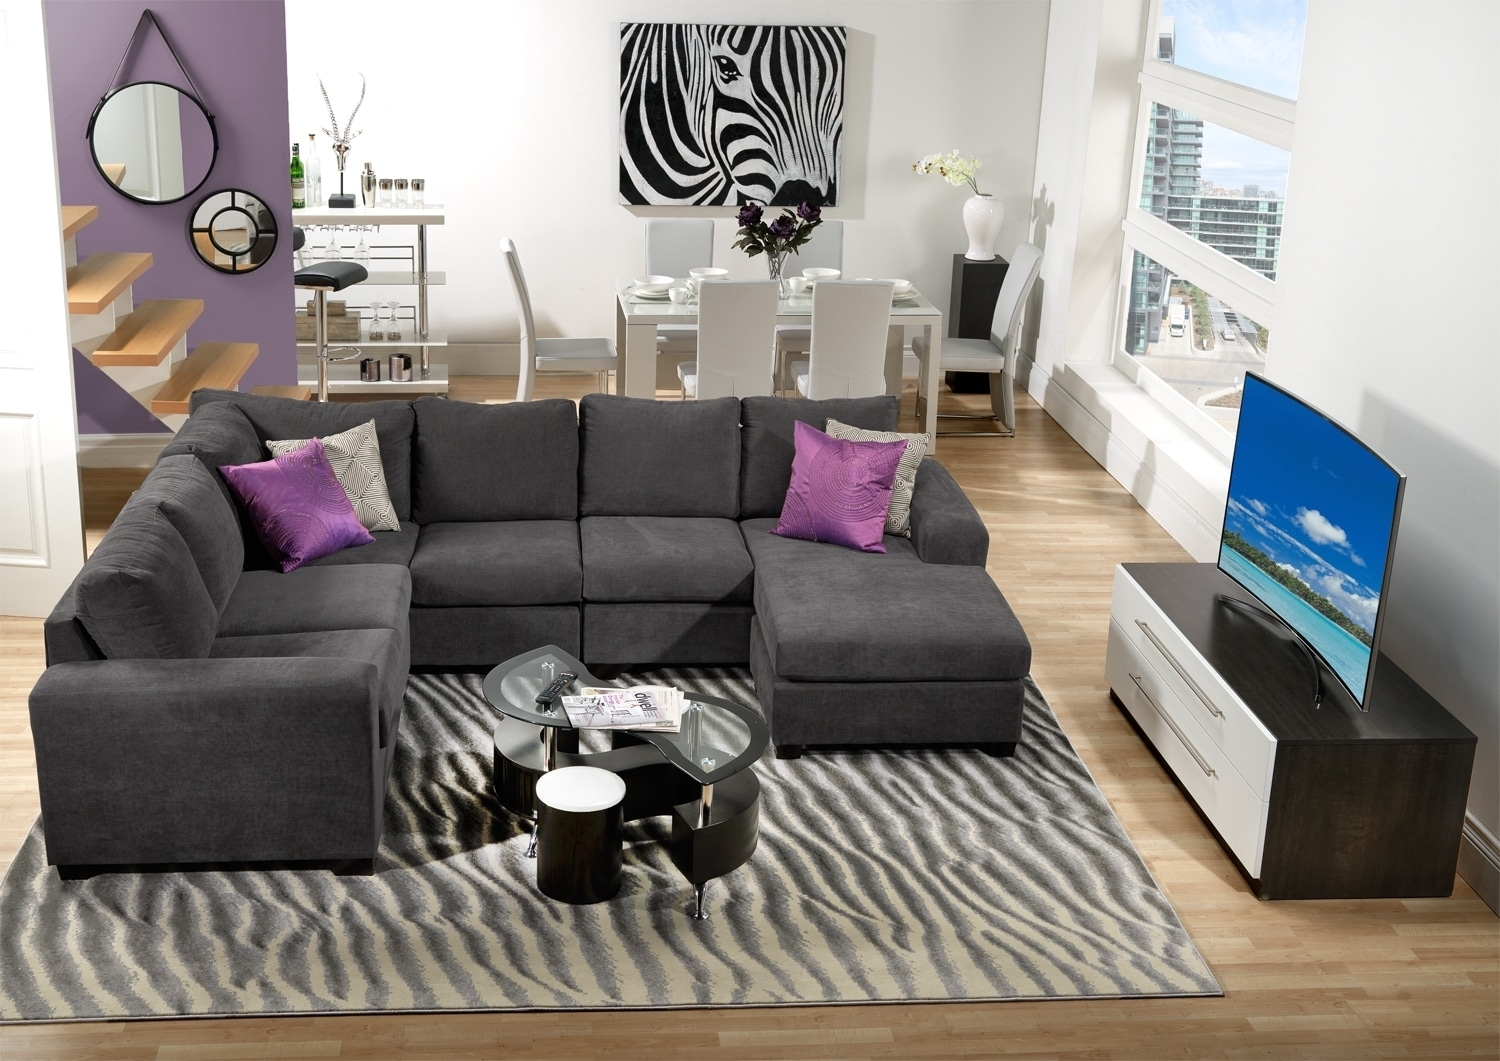 Danielle 3-Piece Sectional With Right-Facing Corner Wedge - Grey within Leons Sectional Sofas (Image 4 of 10)